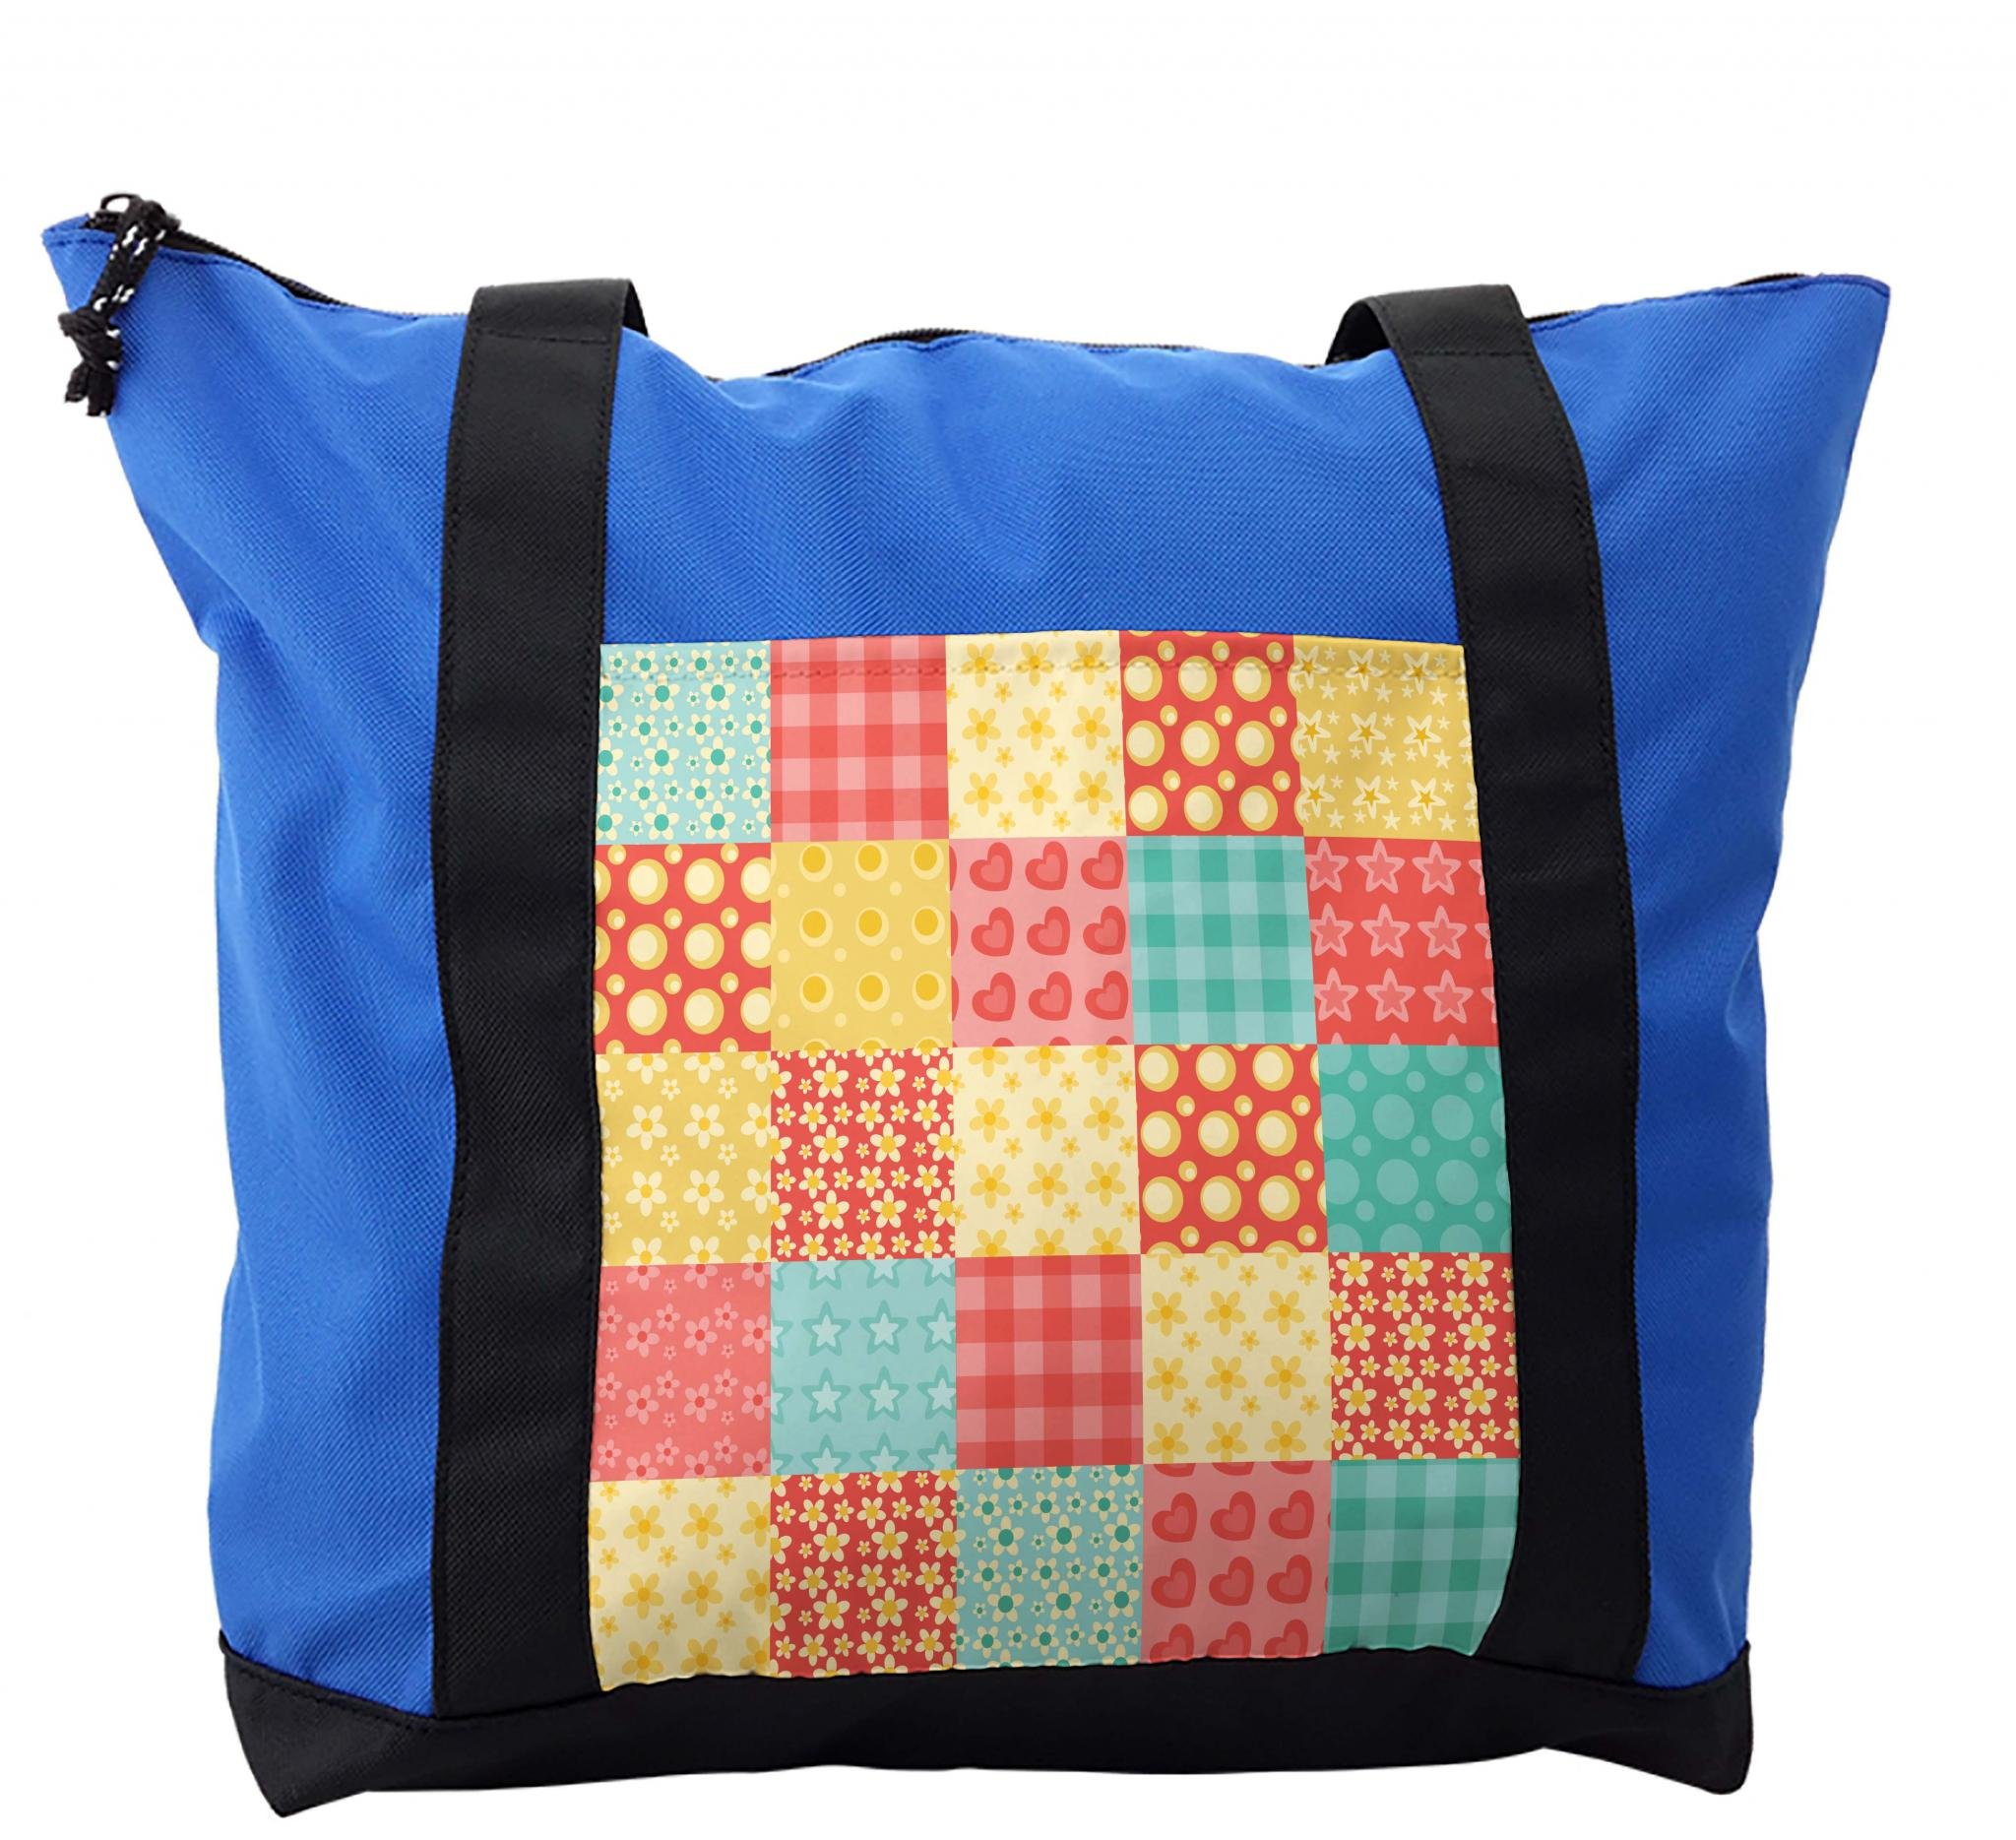 Lunarable Patchwork Shoulder Bag, Gingham Style Tile Design, Durable with Zipper